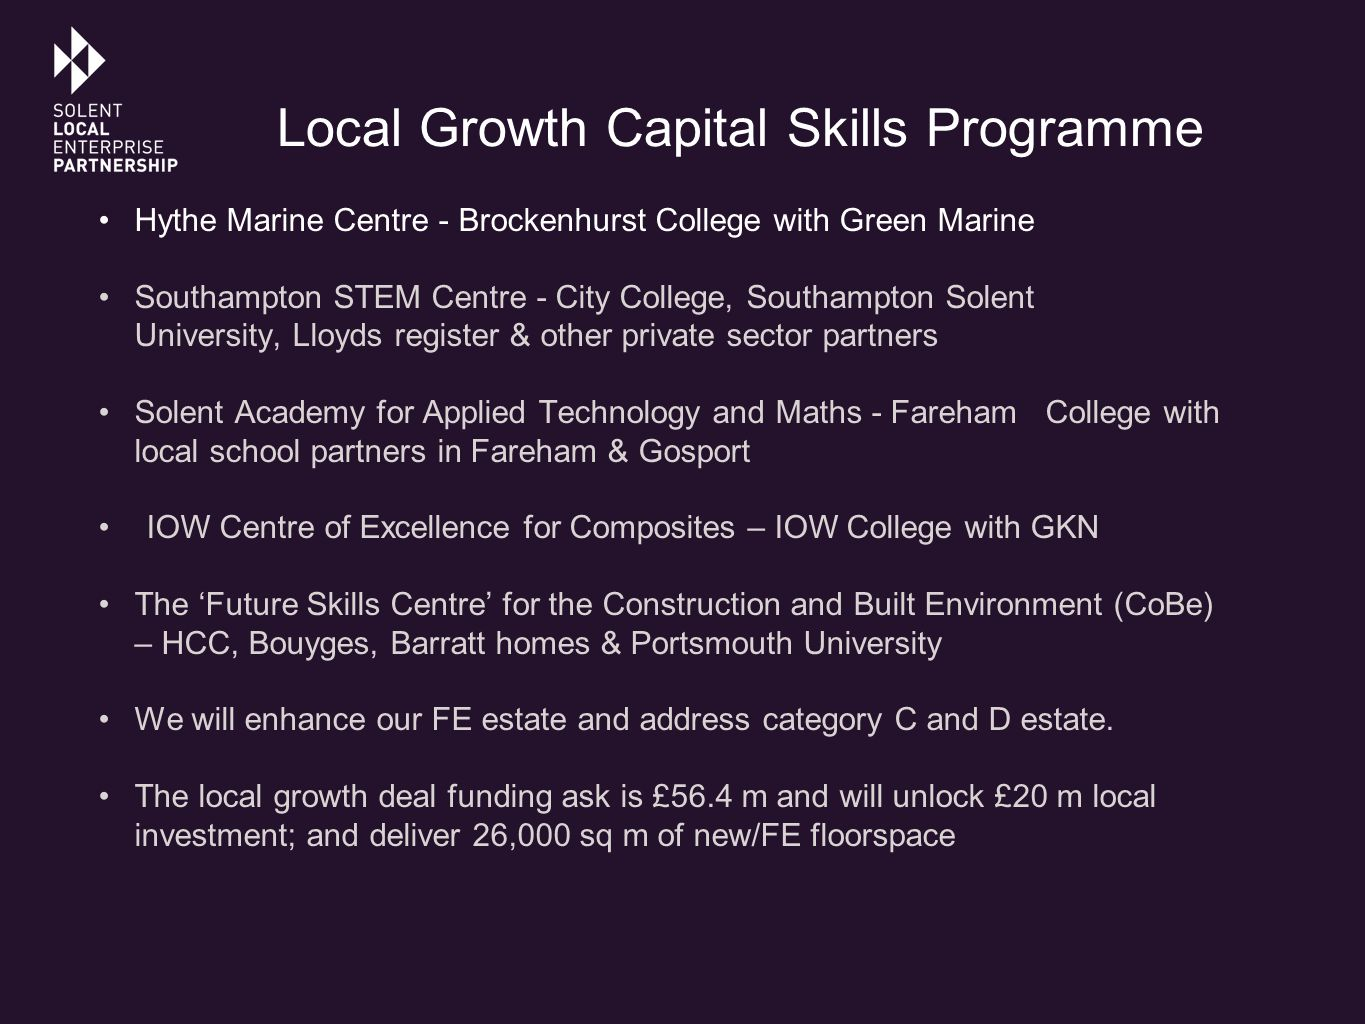 Local Growth Capital Skills Programme Hythe Marine Centre - Brockenhurst College with Green Marine Southampton STEM Centre - City College, Southampton Solent University, Lloyds register & other private sector partners Solent Academy for Applied Technology and Maths - Fareham College with local school partners in Fareham & Gosport IOW Centre of Excellence for Composites – IOW College with GKN The 'Future Skills Centre' for the Construction and Built Environment (CoBe) – HCC, Bouyges, Barratt homes & Portsmouth University We will enhance our FE estate and address category C and D estate.